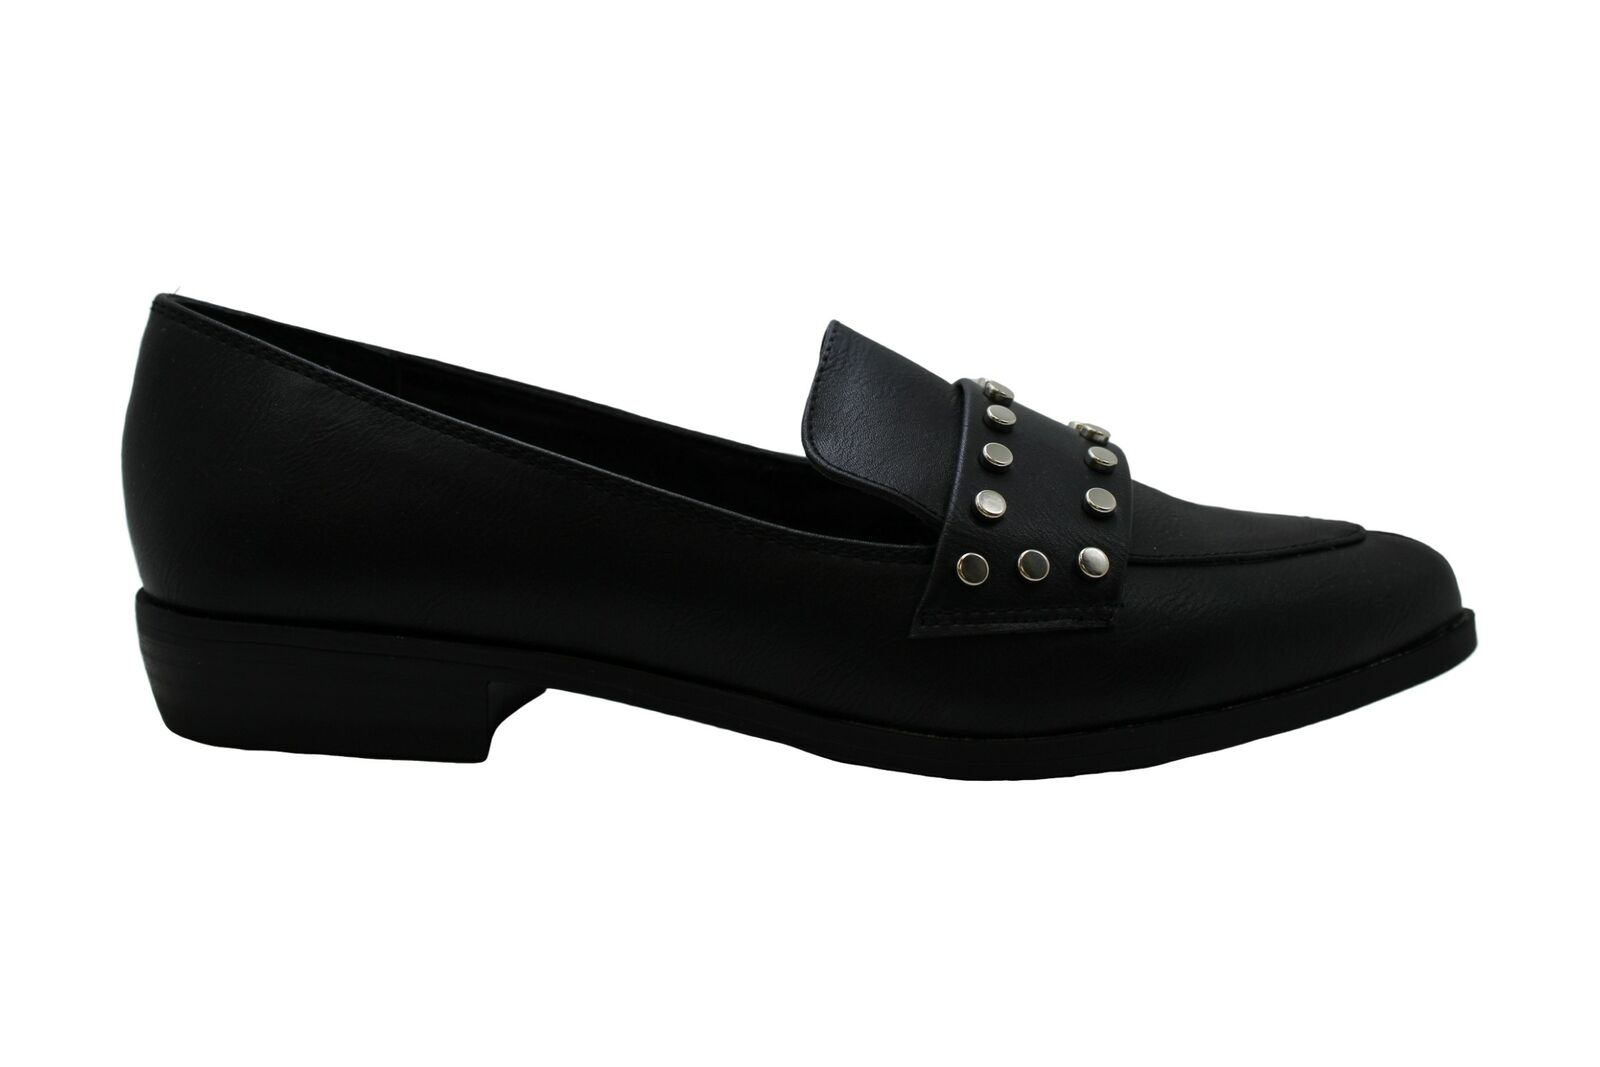 Bar III Womens Involve Pointed Toe Loafers, Black SM, Size 7.5 i0Wk US